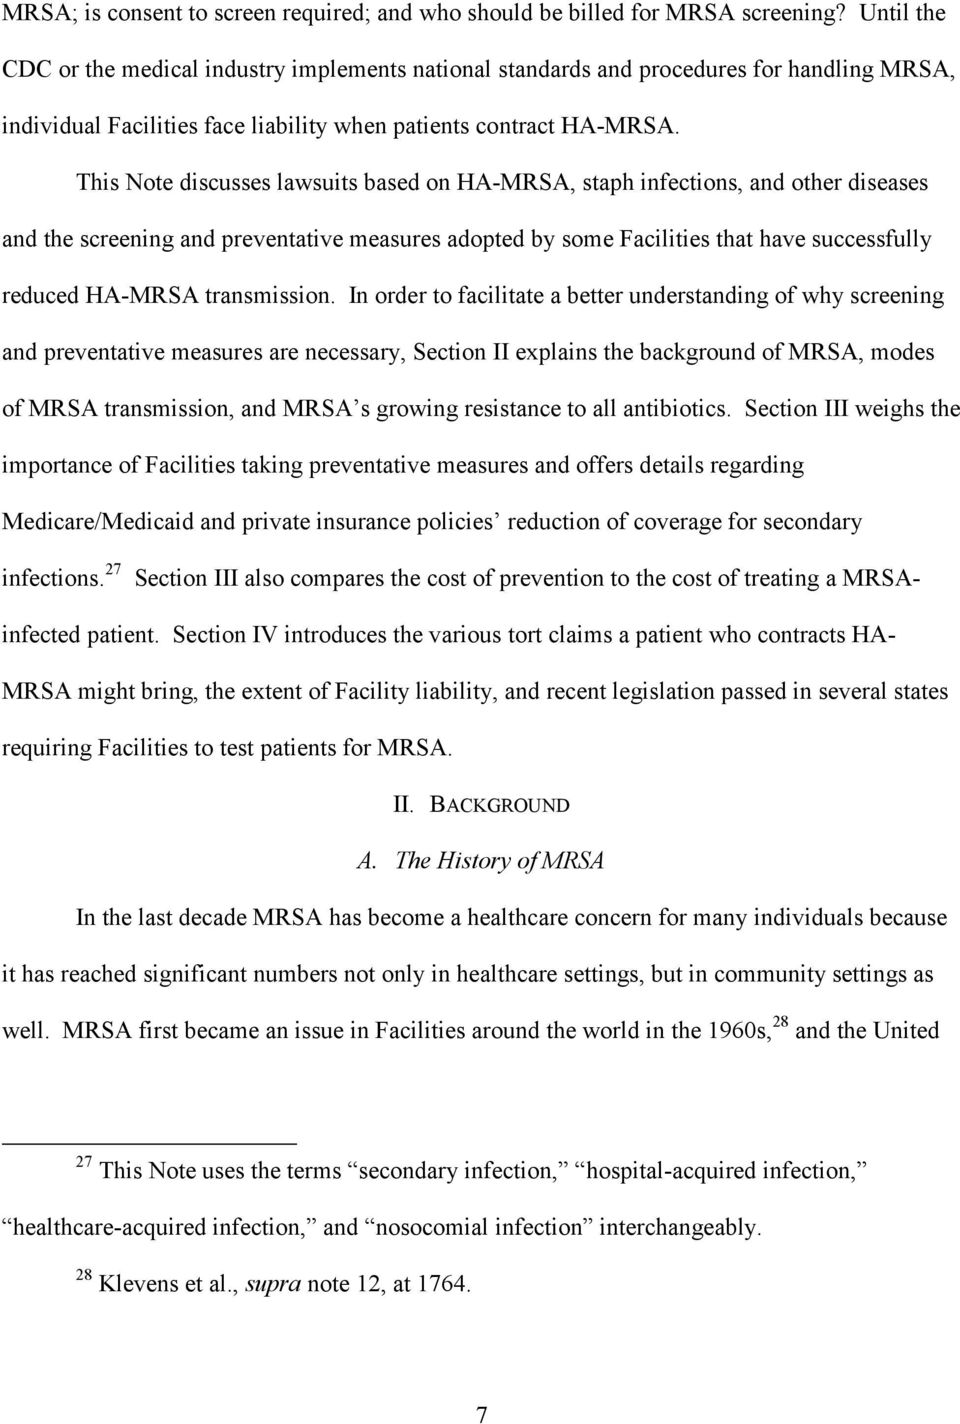 This Note discusses lawsuits based on HA-MRSA, staph infections, and other diseases and the screening and preventative measures adopted by some Facilities that have successfully reduced HA-MRSA